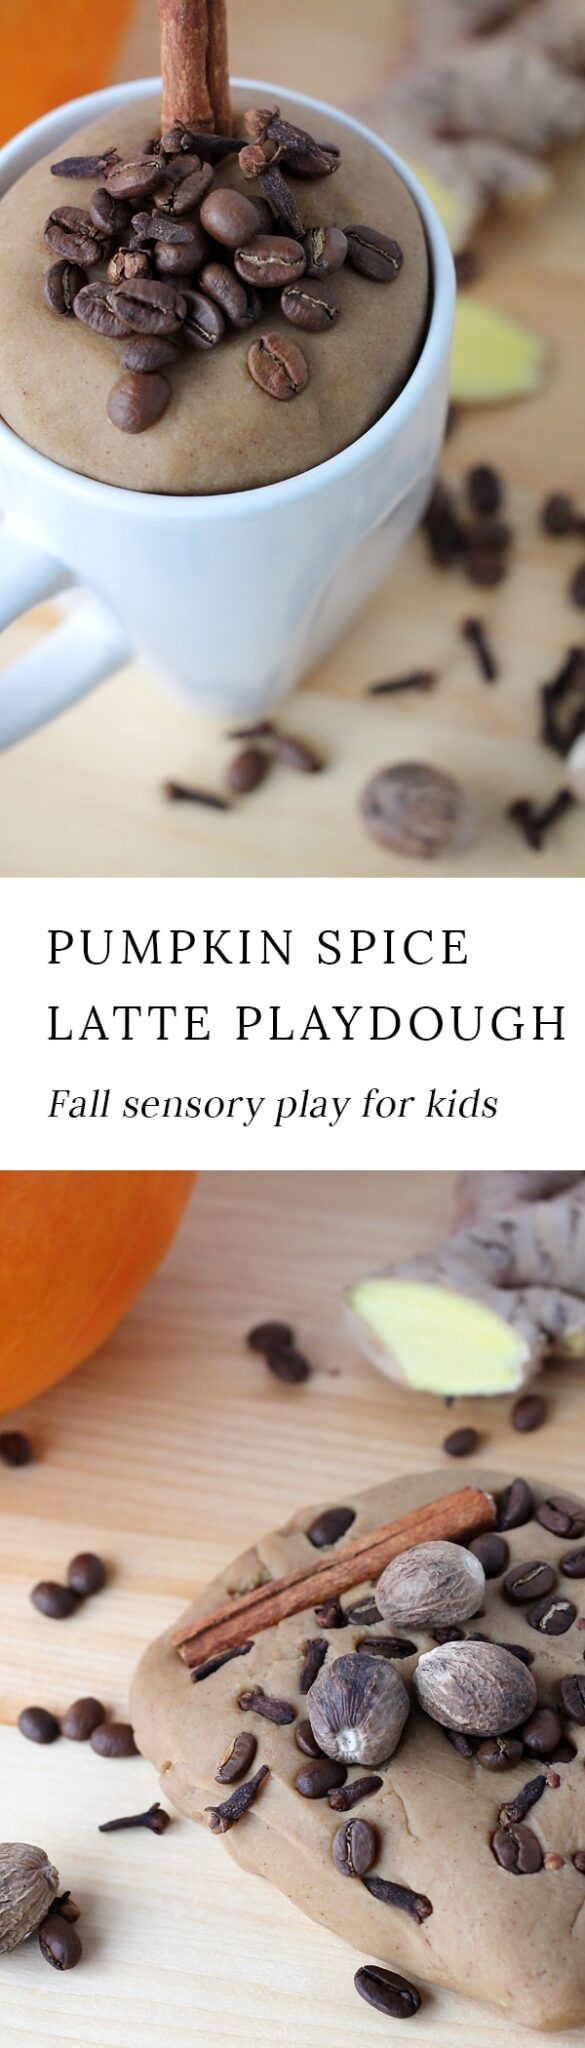 Indulge your child's senses with the rich scents of nutmeg, clove, cinnamon, and coffee beans in this buttery soft Pumpkin Spice Latte Playdough.